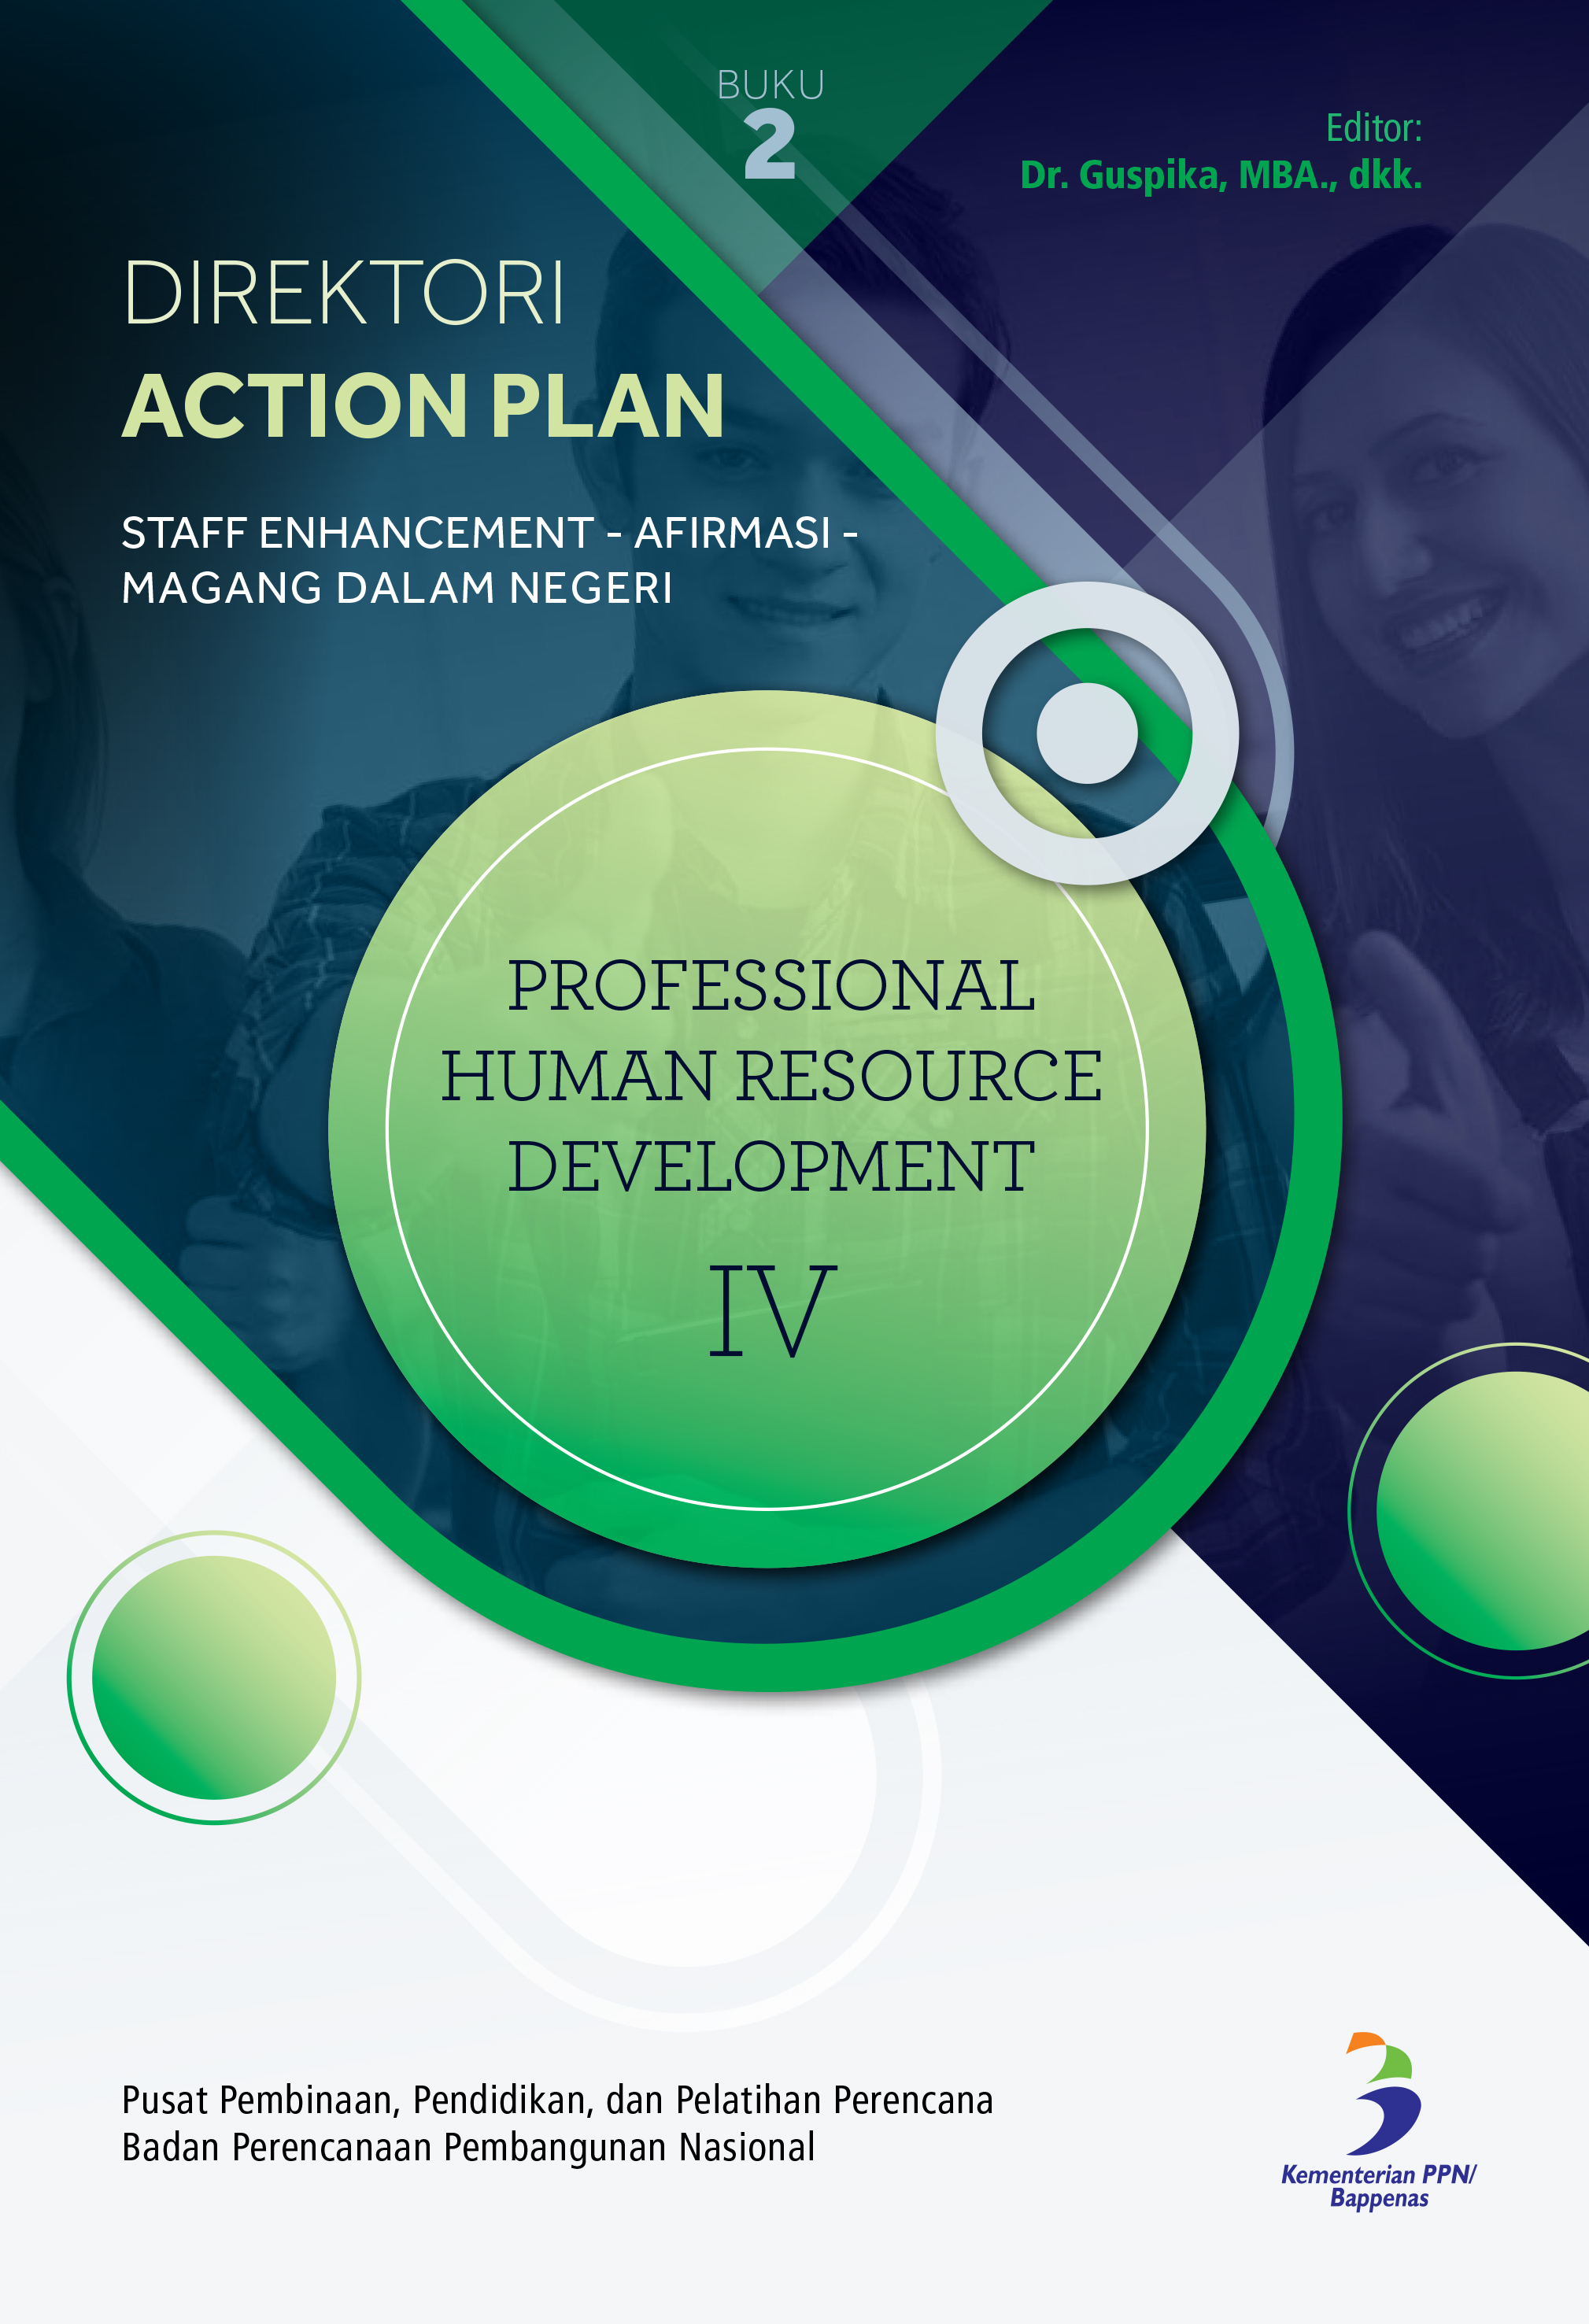 Buku 2 - Direktori Action Plan Program Pelatihan PHRD IV